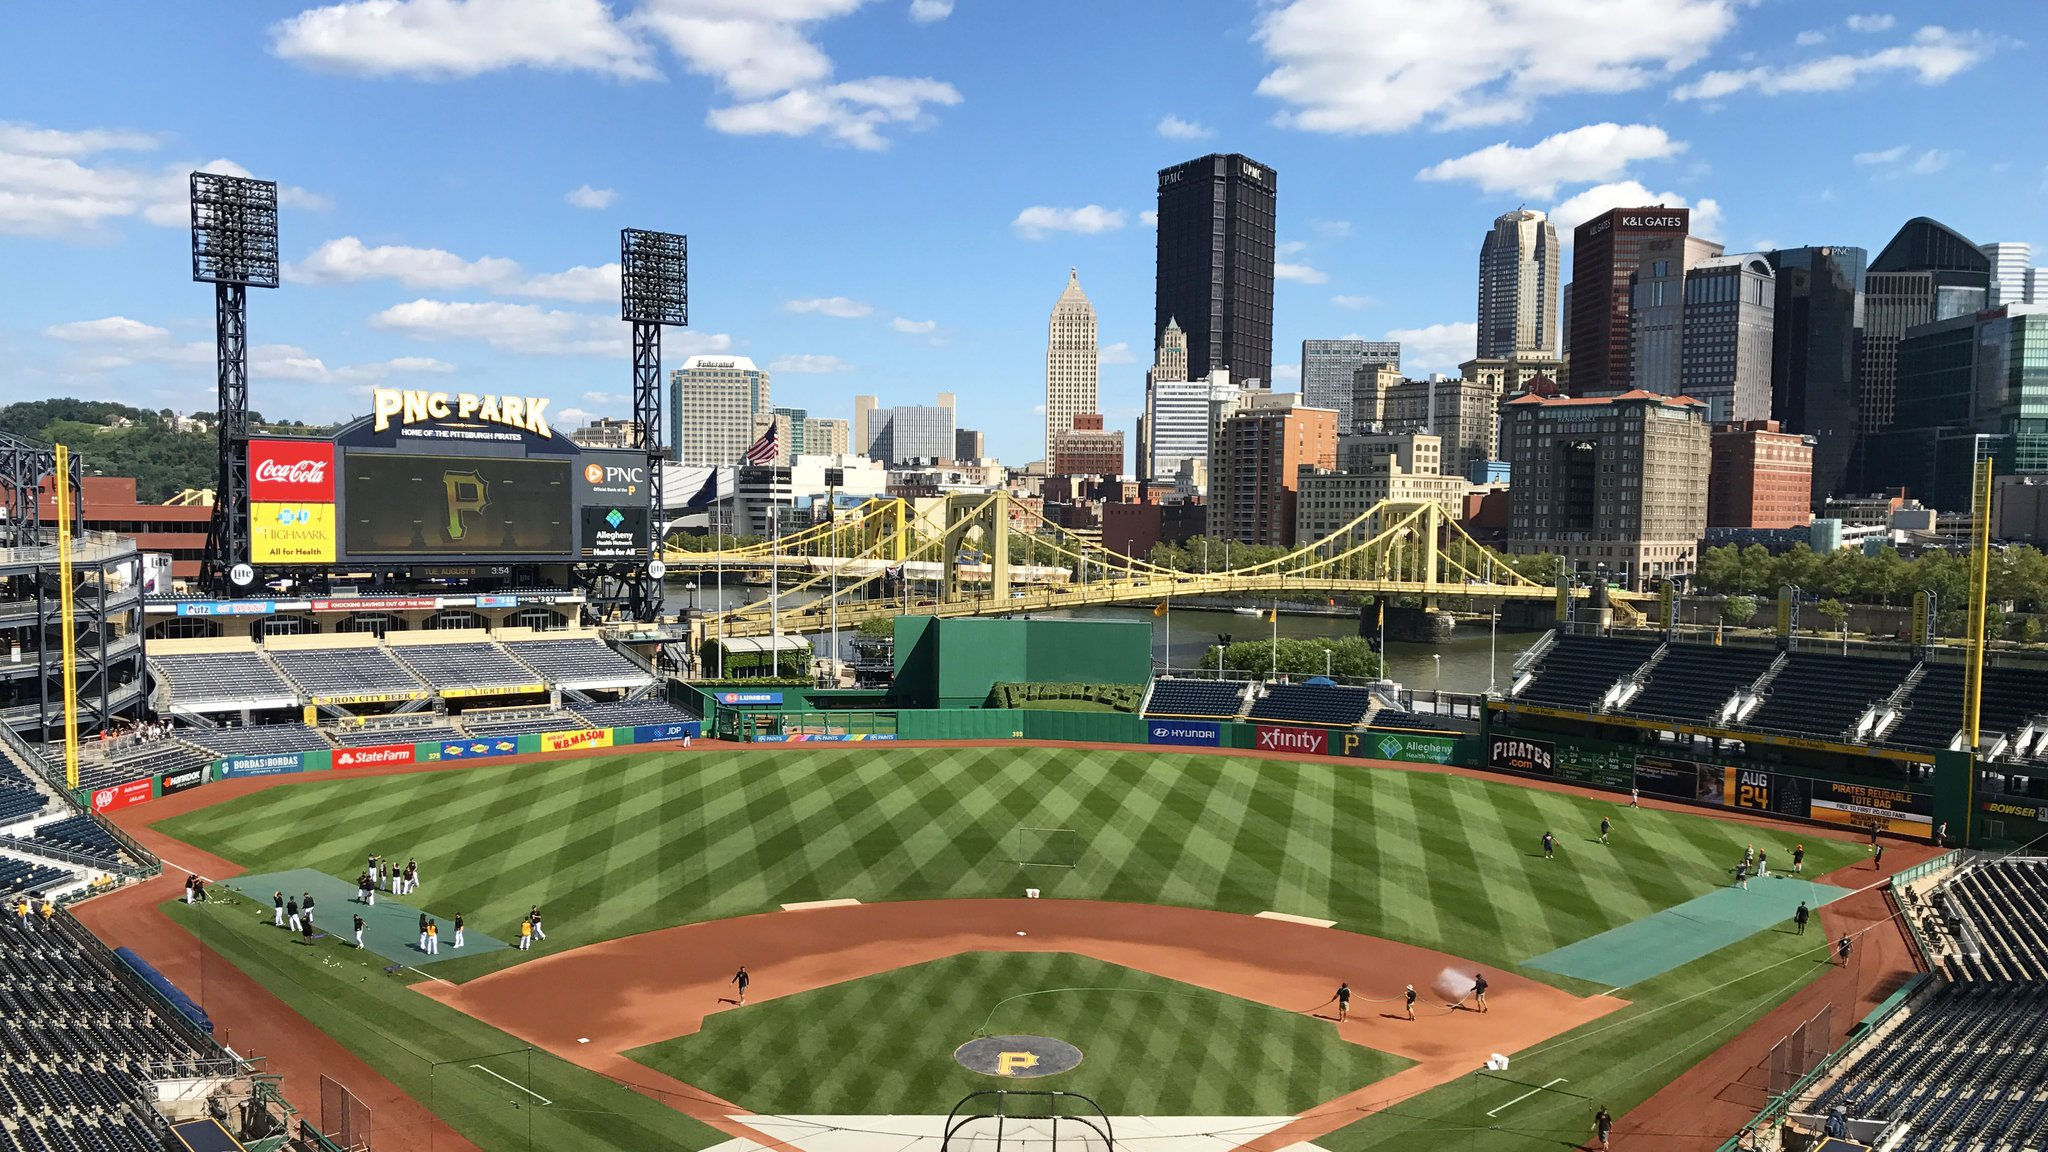 Did you hear the @Pirates have a nice ballpark? https://t.co/yLPYrJBGpr